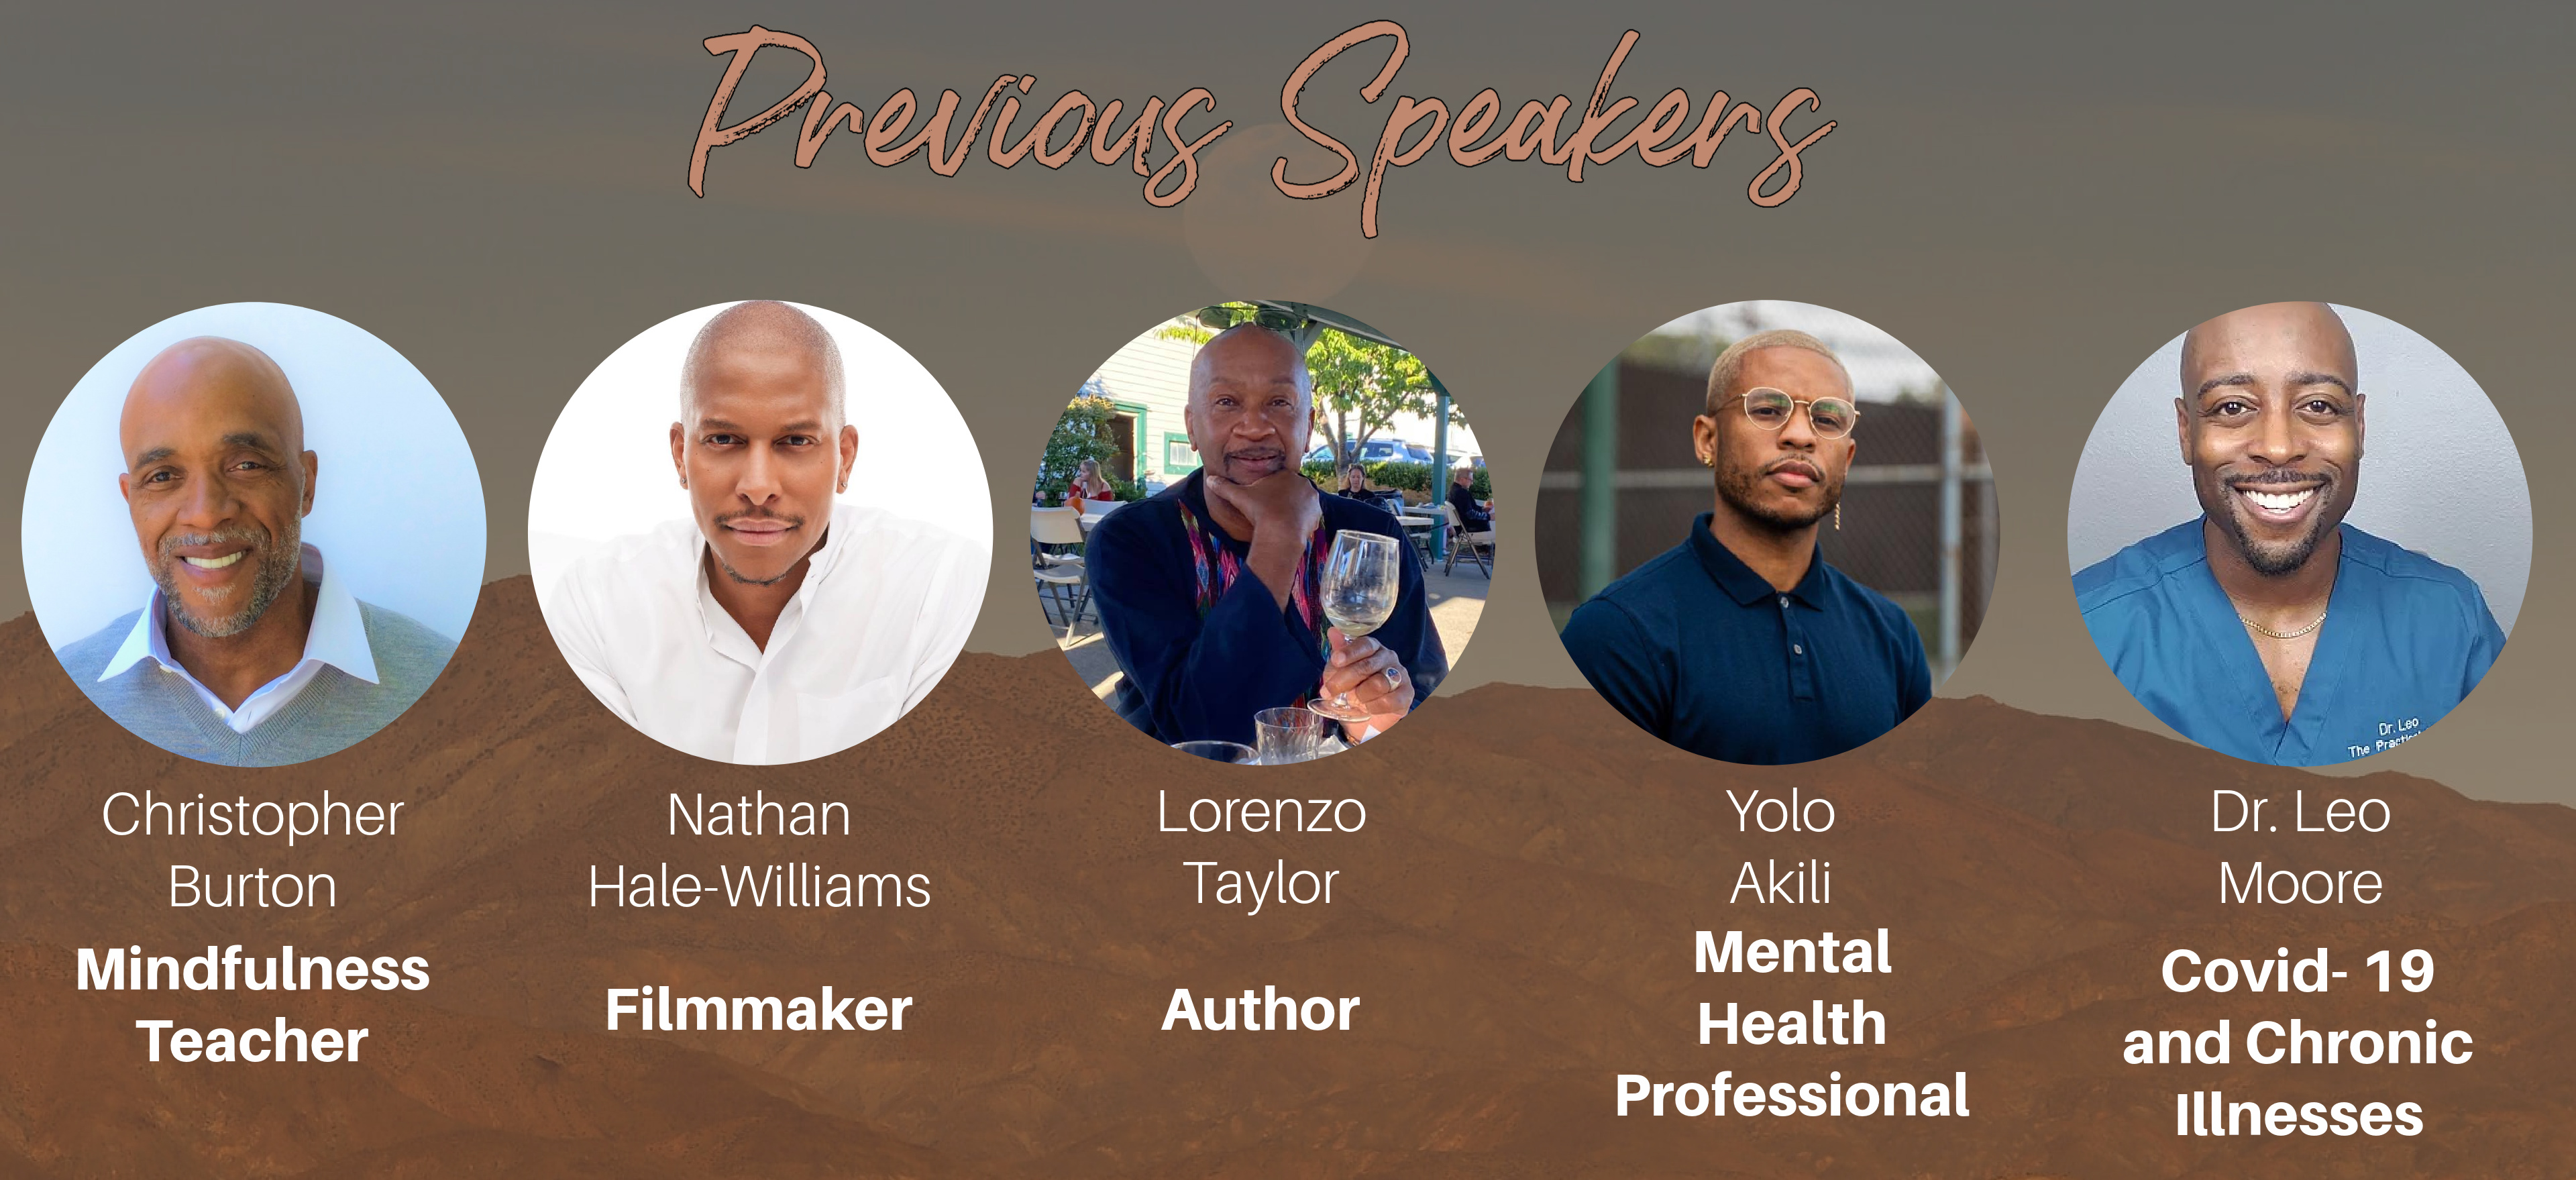 picture of previous speakers yolo robinson, nathan hale williams, lorenzo taylor, and Dr. Leo Moore.